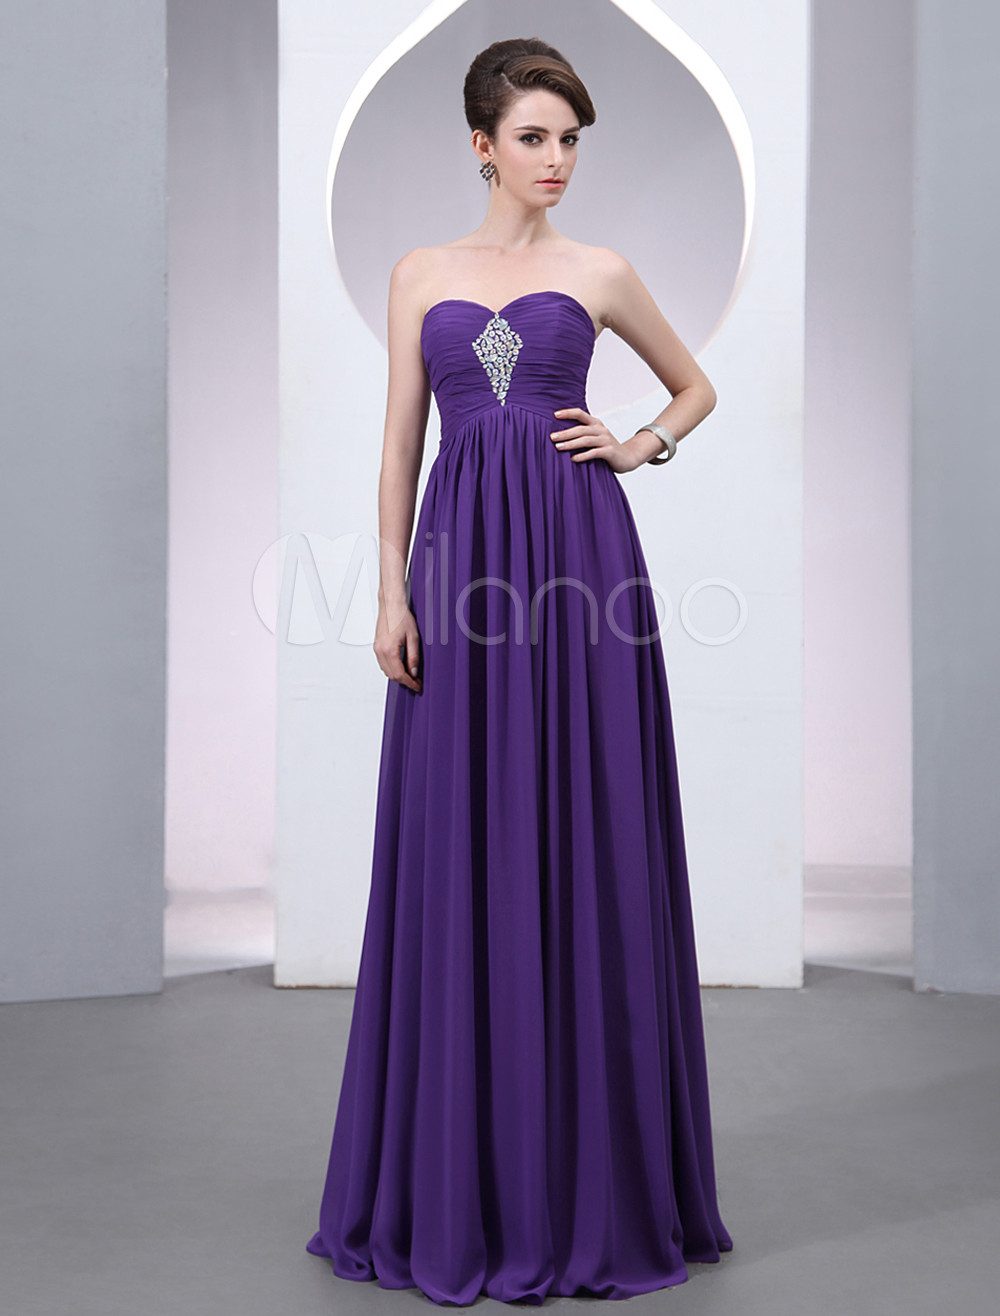 Buy Chiffon Evening Dress Lavender Beading A Line Prom Dress Strapless Sweetheart Floor Length Party Dress for $110.49 in Milanoo store